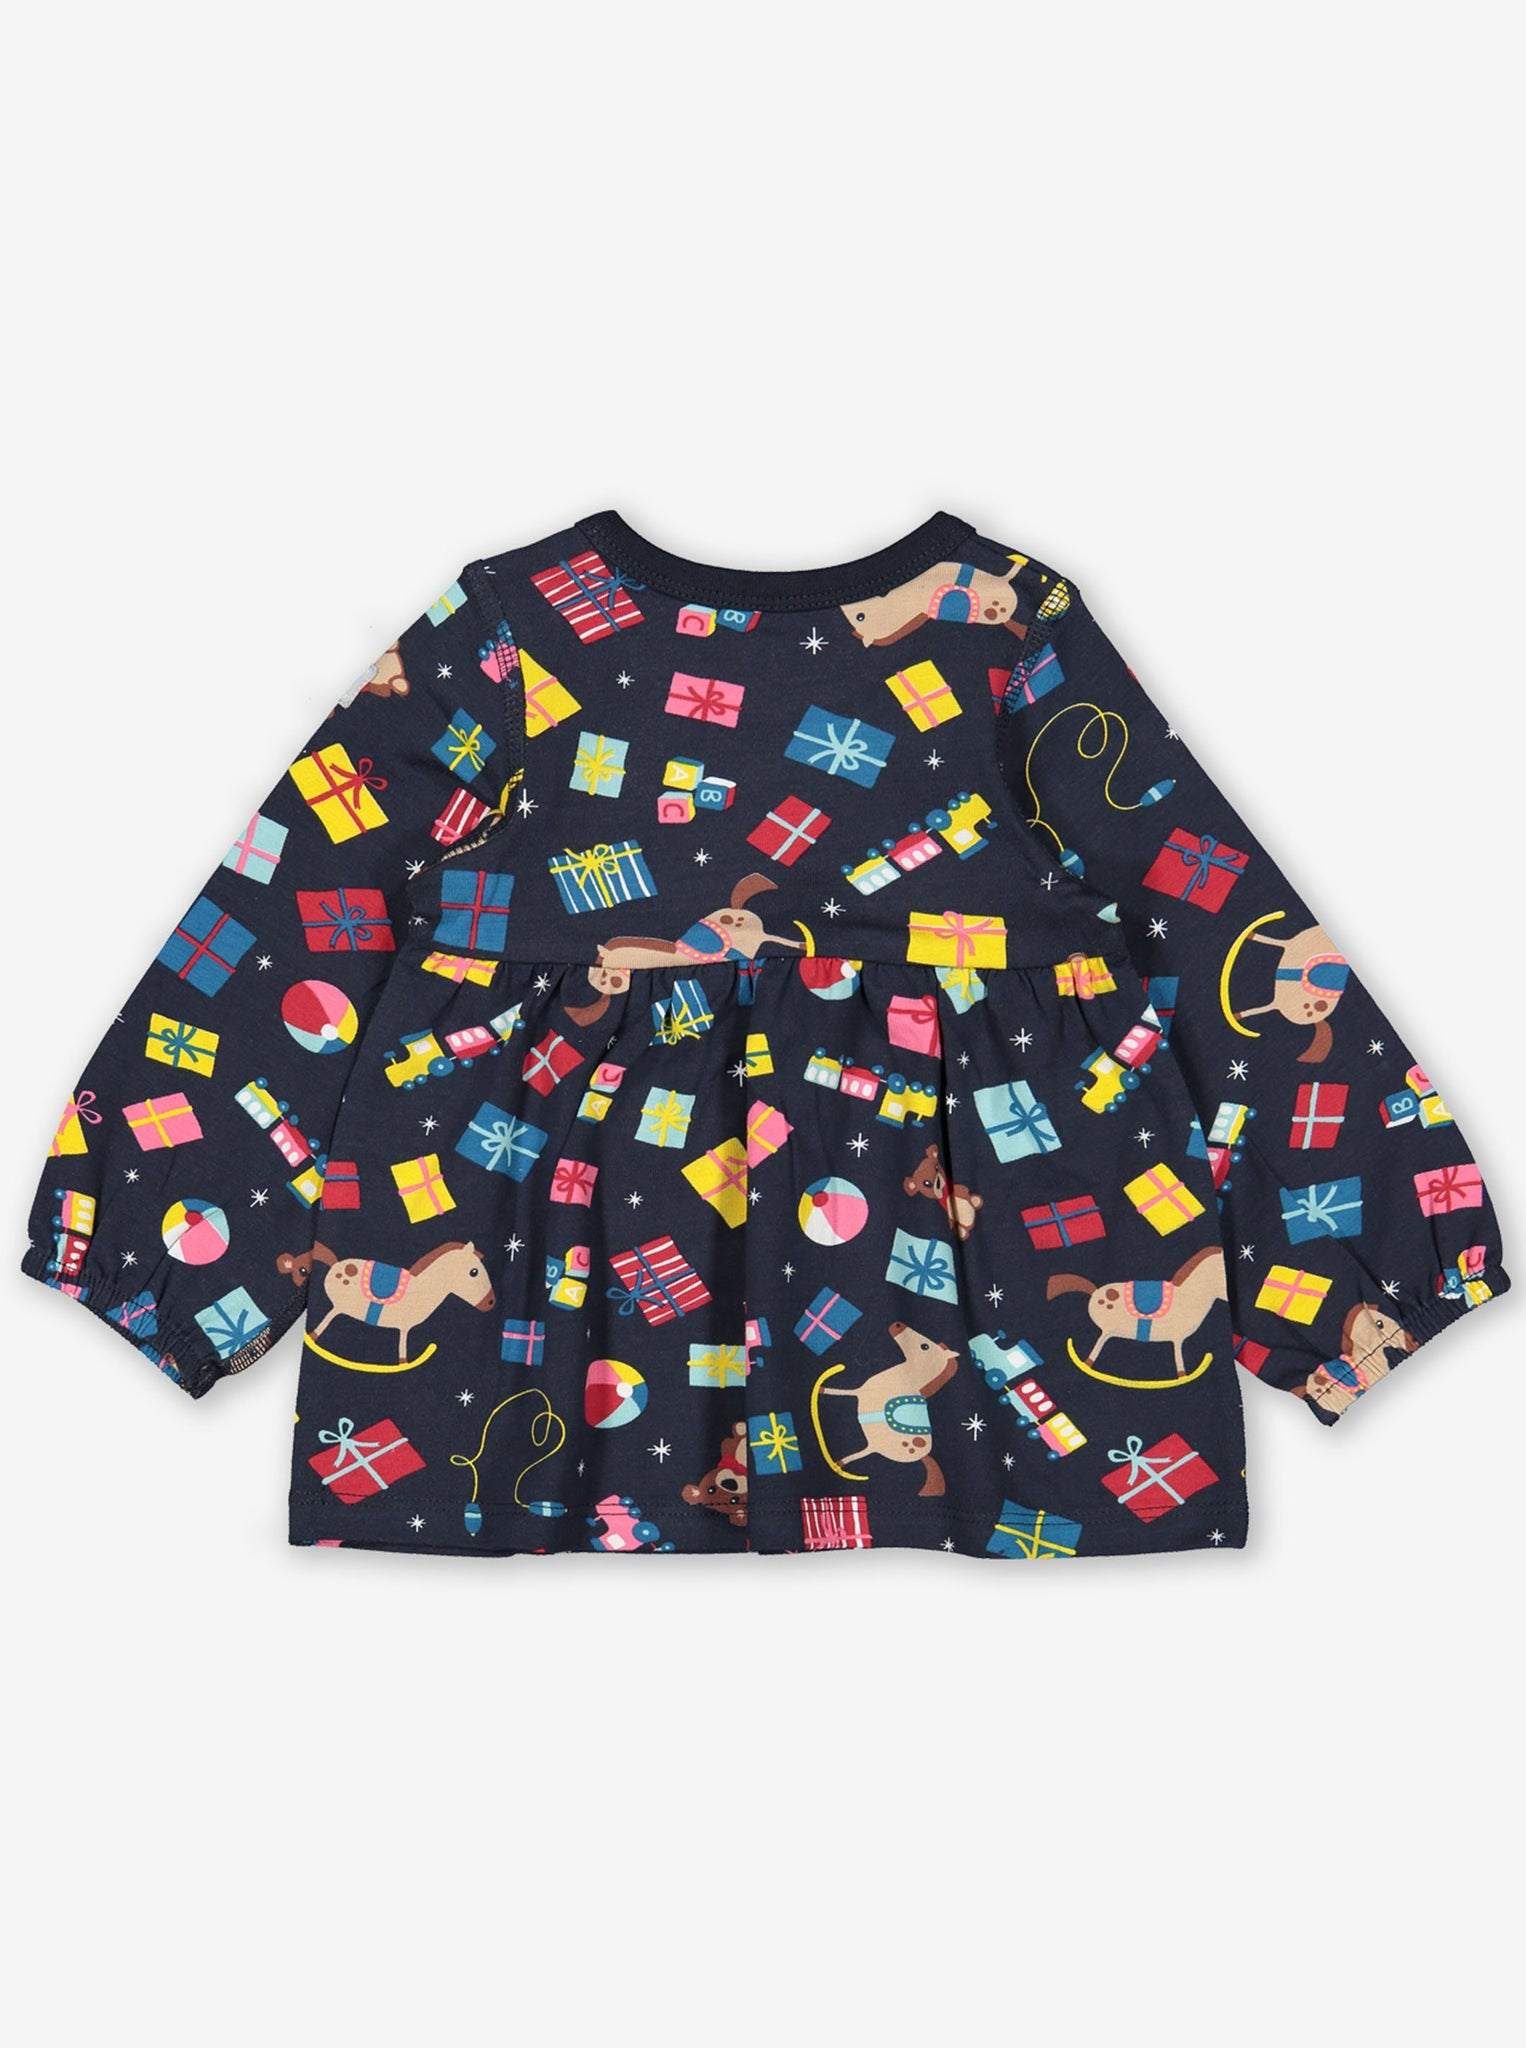 Presents & Toys Baby Top